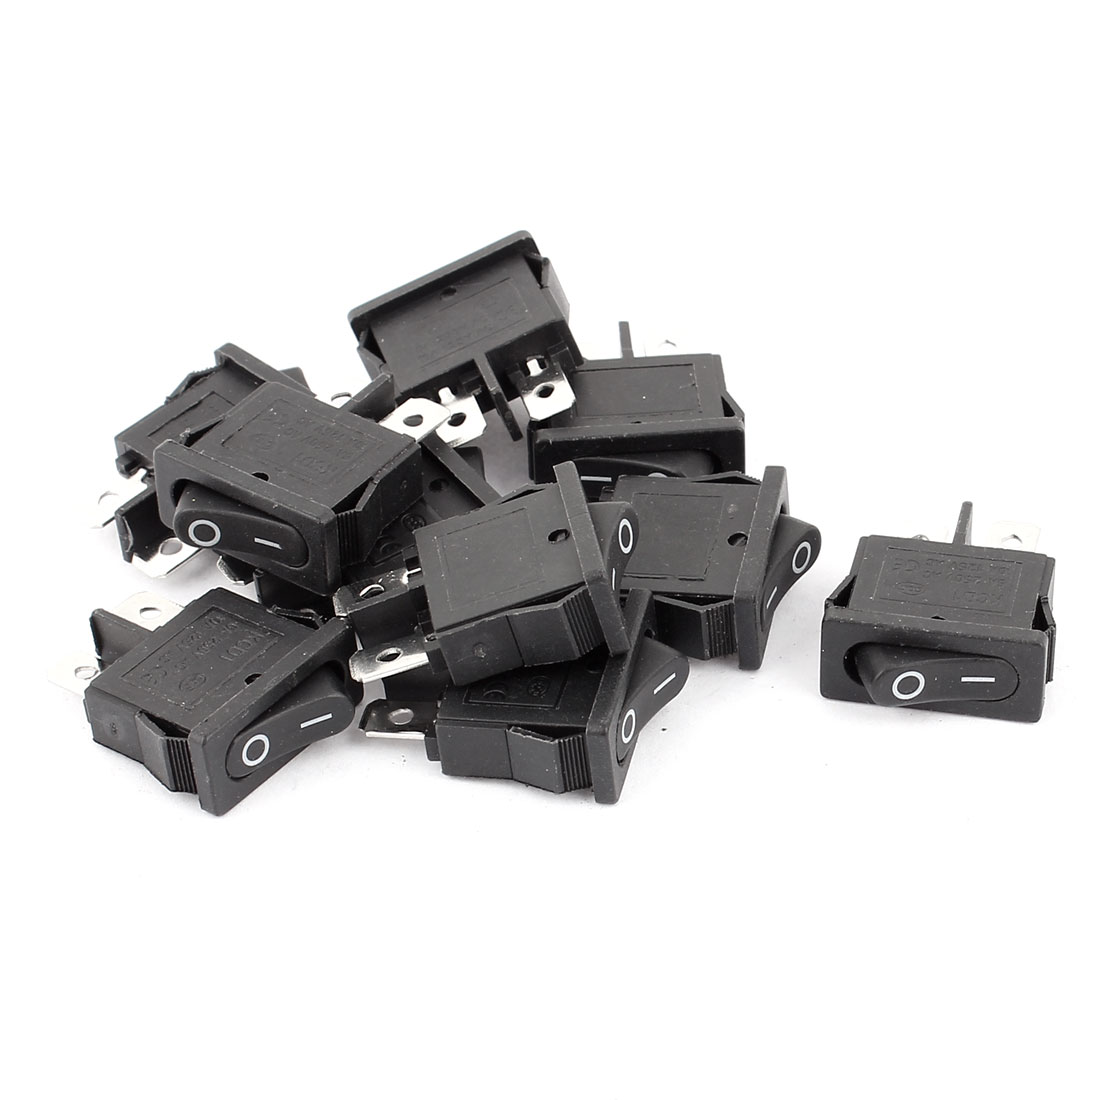 10Pcs AC250V 6A AC125V 10A 2 Terminals Locking SPST On Off Snap in Boat Rocker Switch